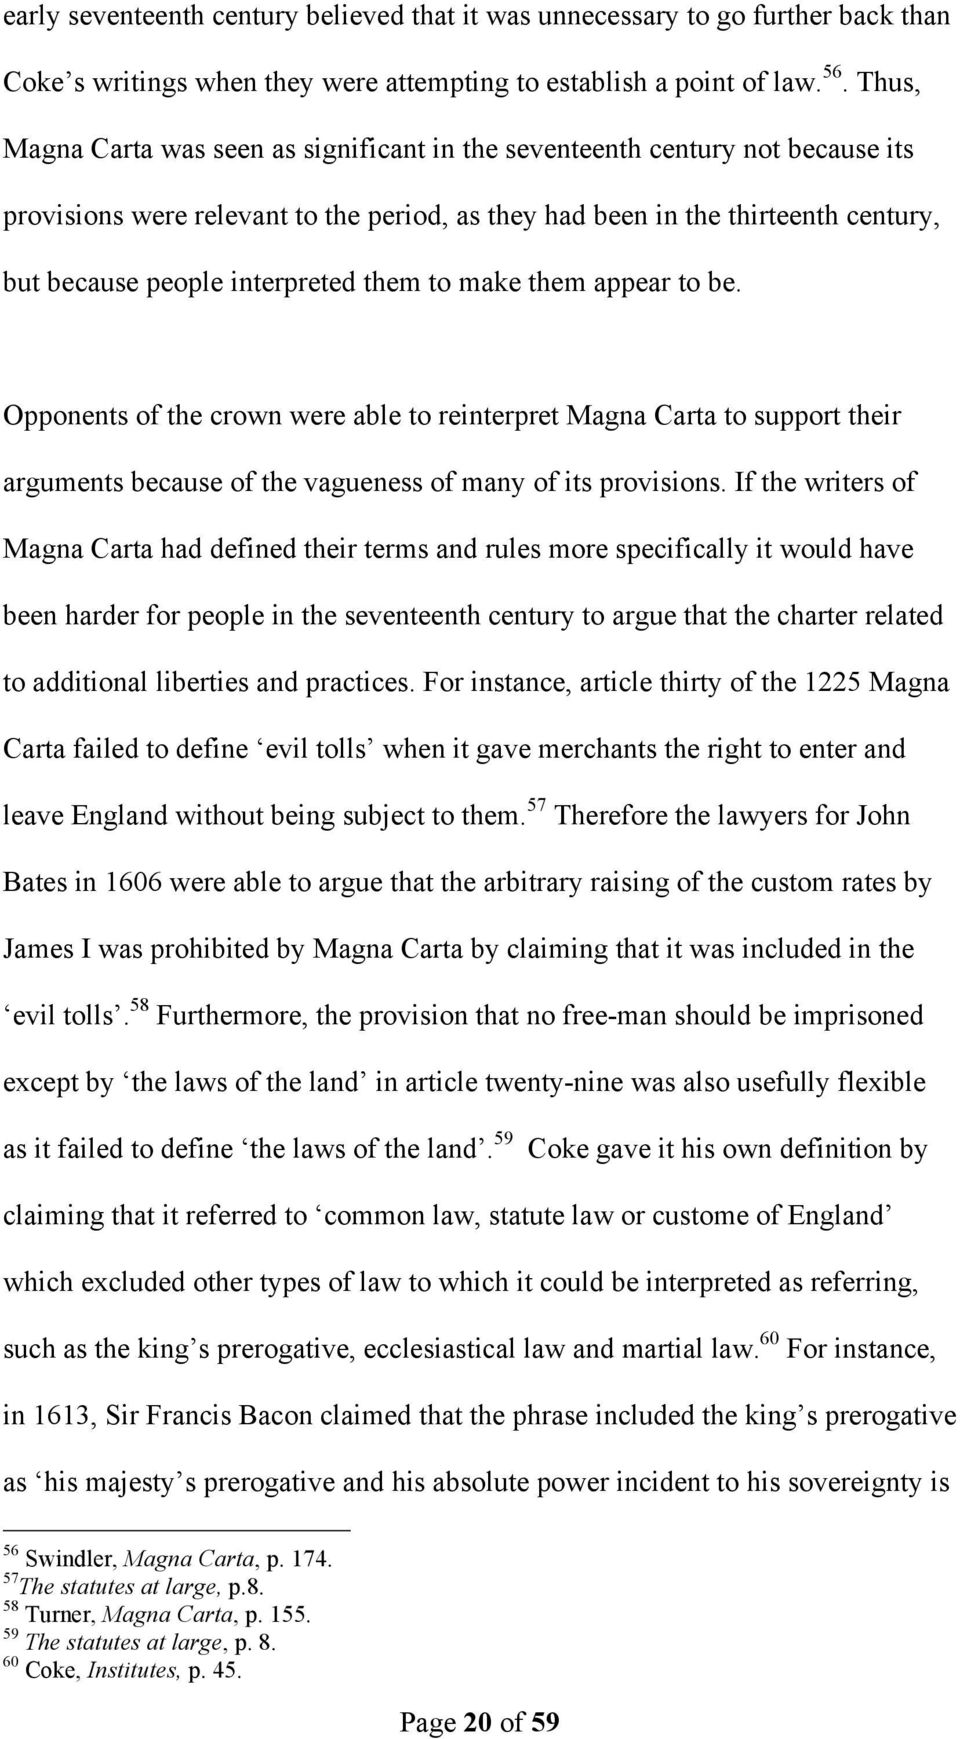 them to make them appear to be. Opponents of the crown were able to reinterpret Magna Carta to support their arguments because of the vagueness of many of its provisions.